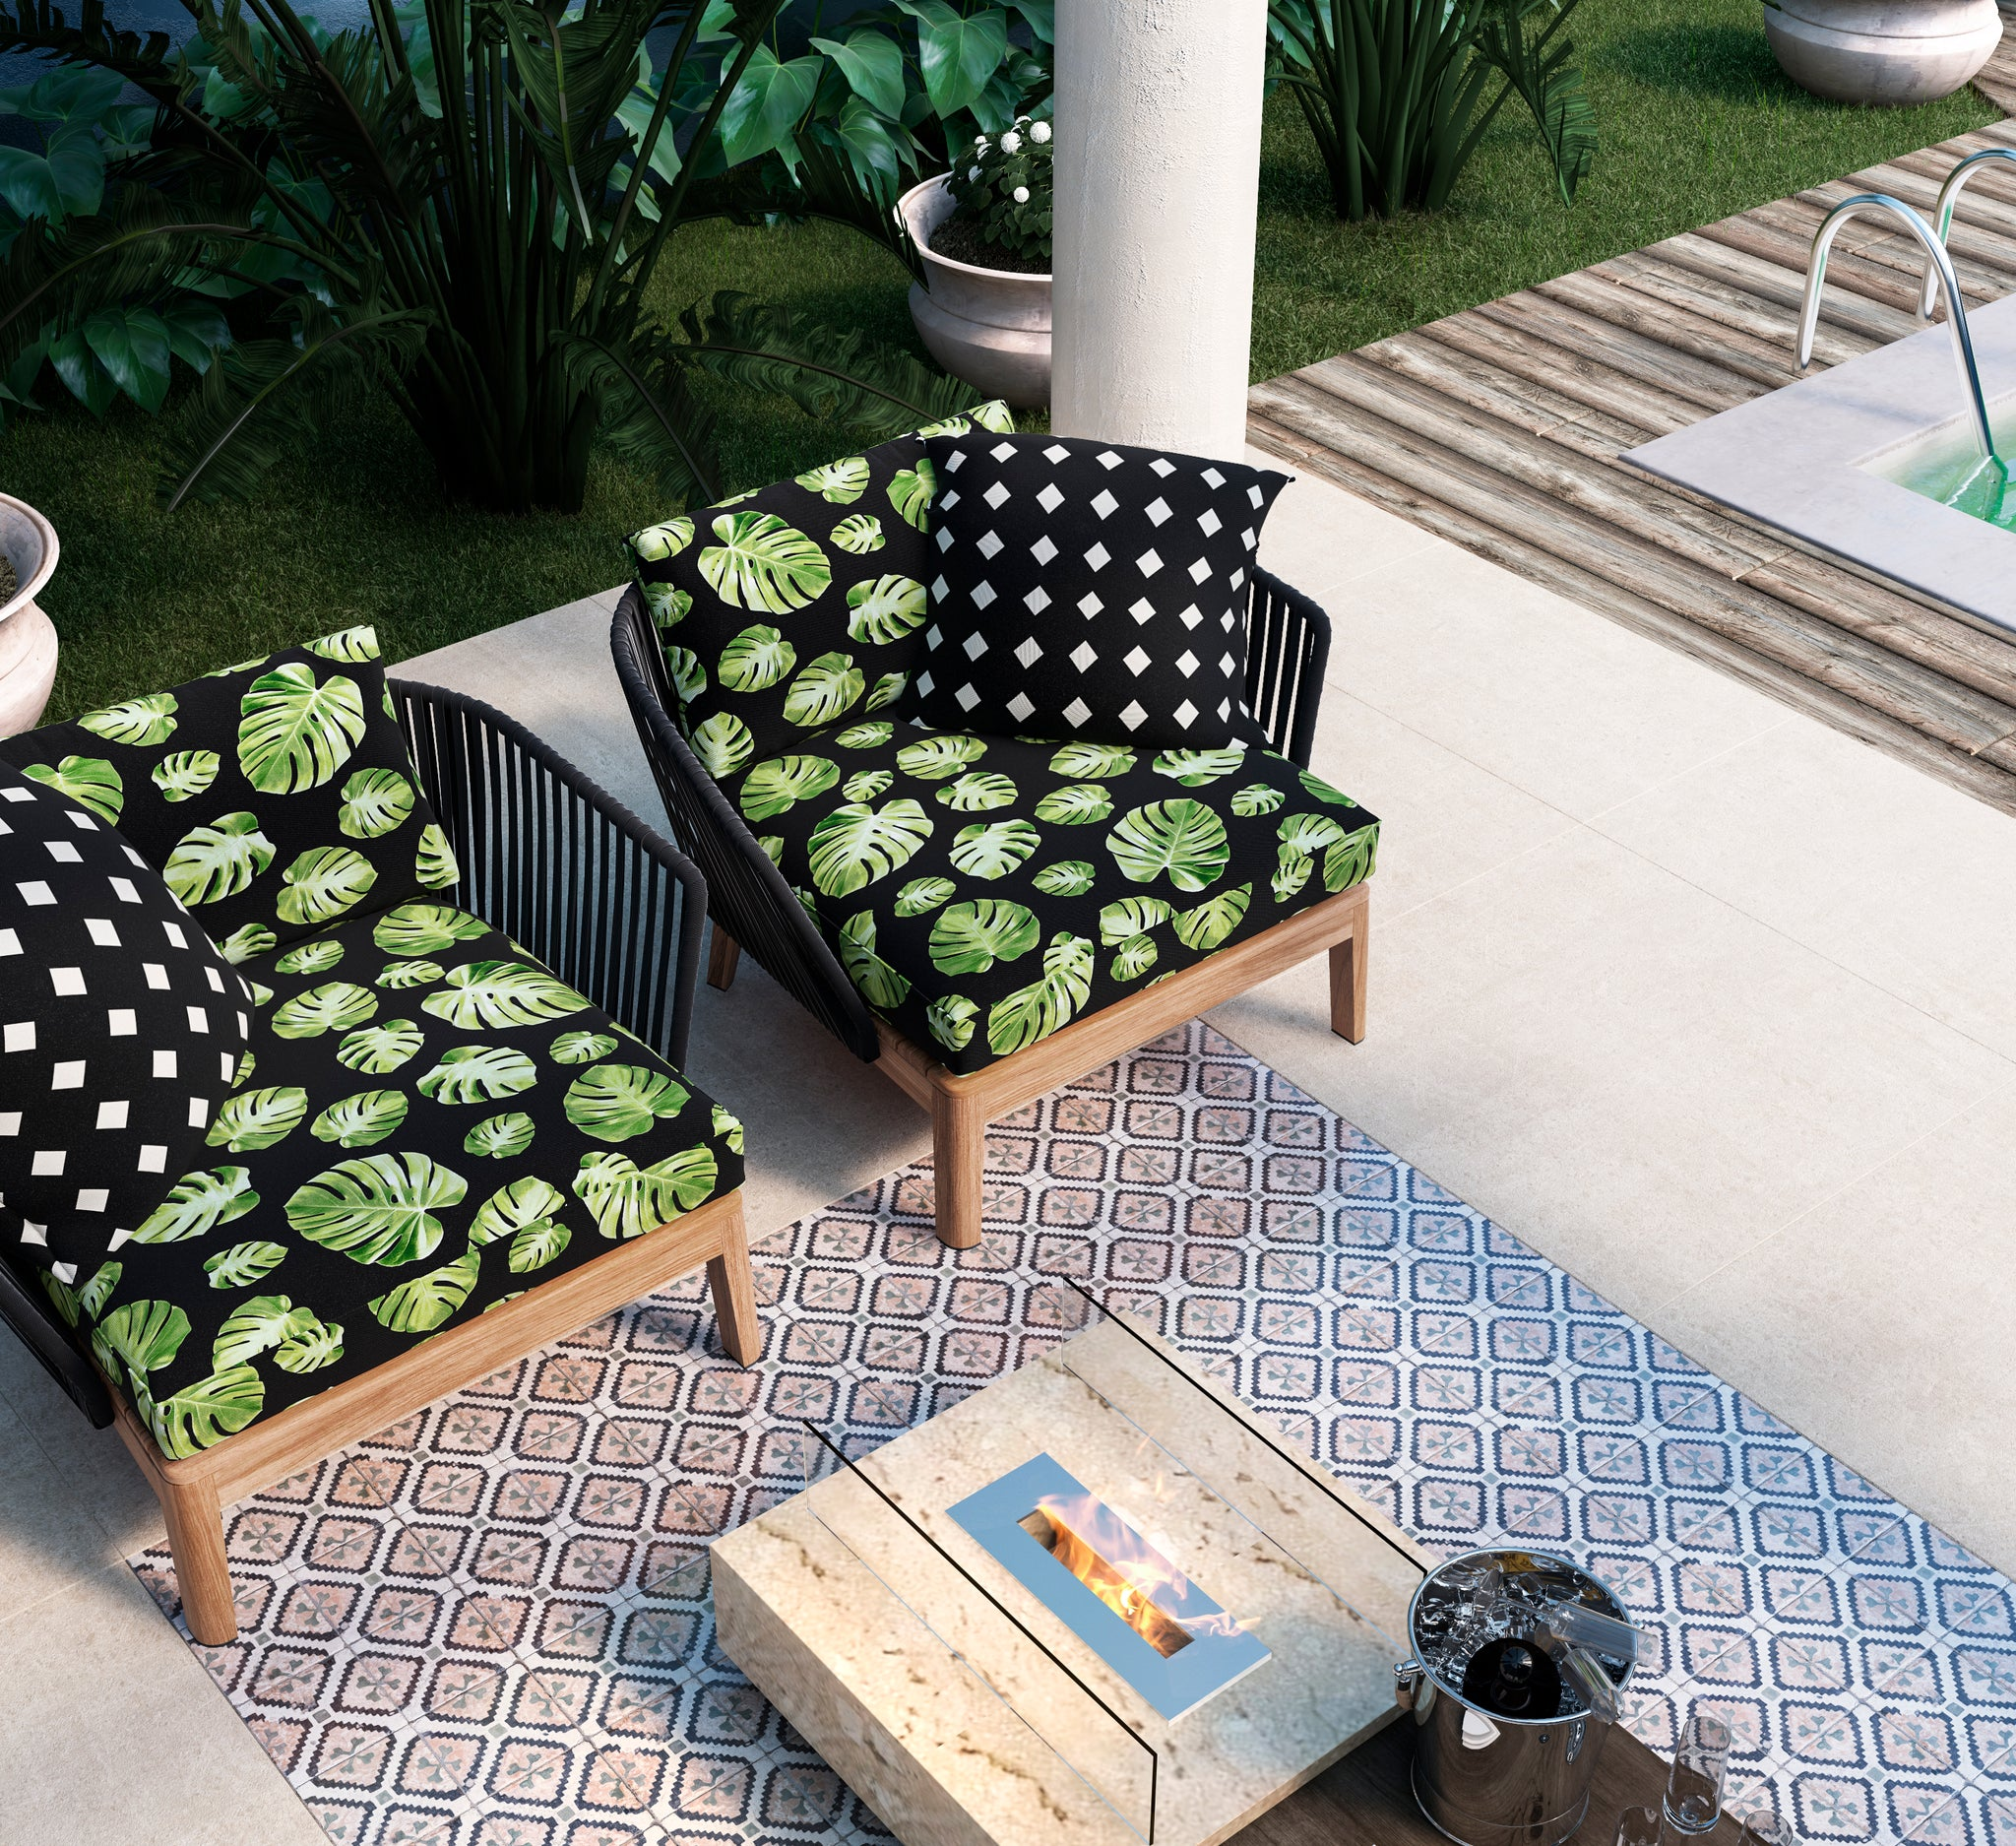 Groovy Braziwi Bean Bag Monstera Preto Gmtry Best Dining Table And Chair Ideas Images Gmtryco